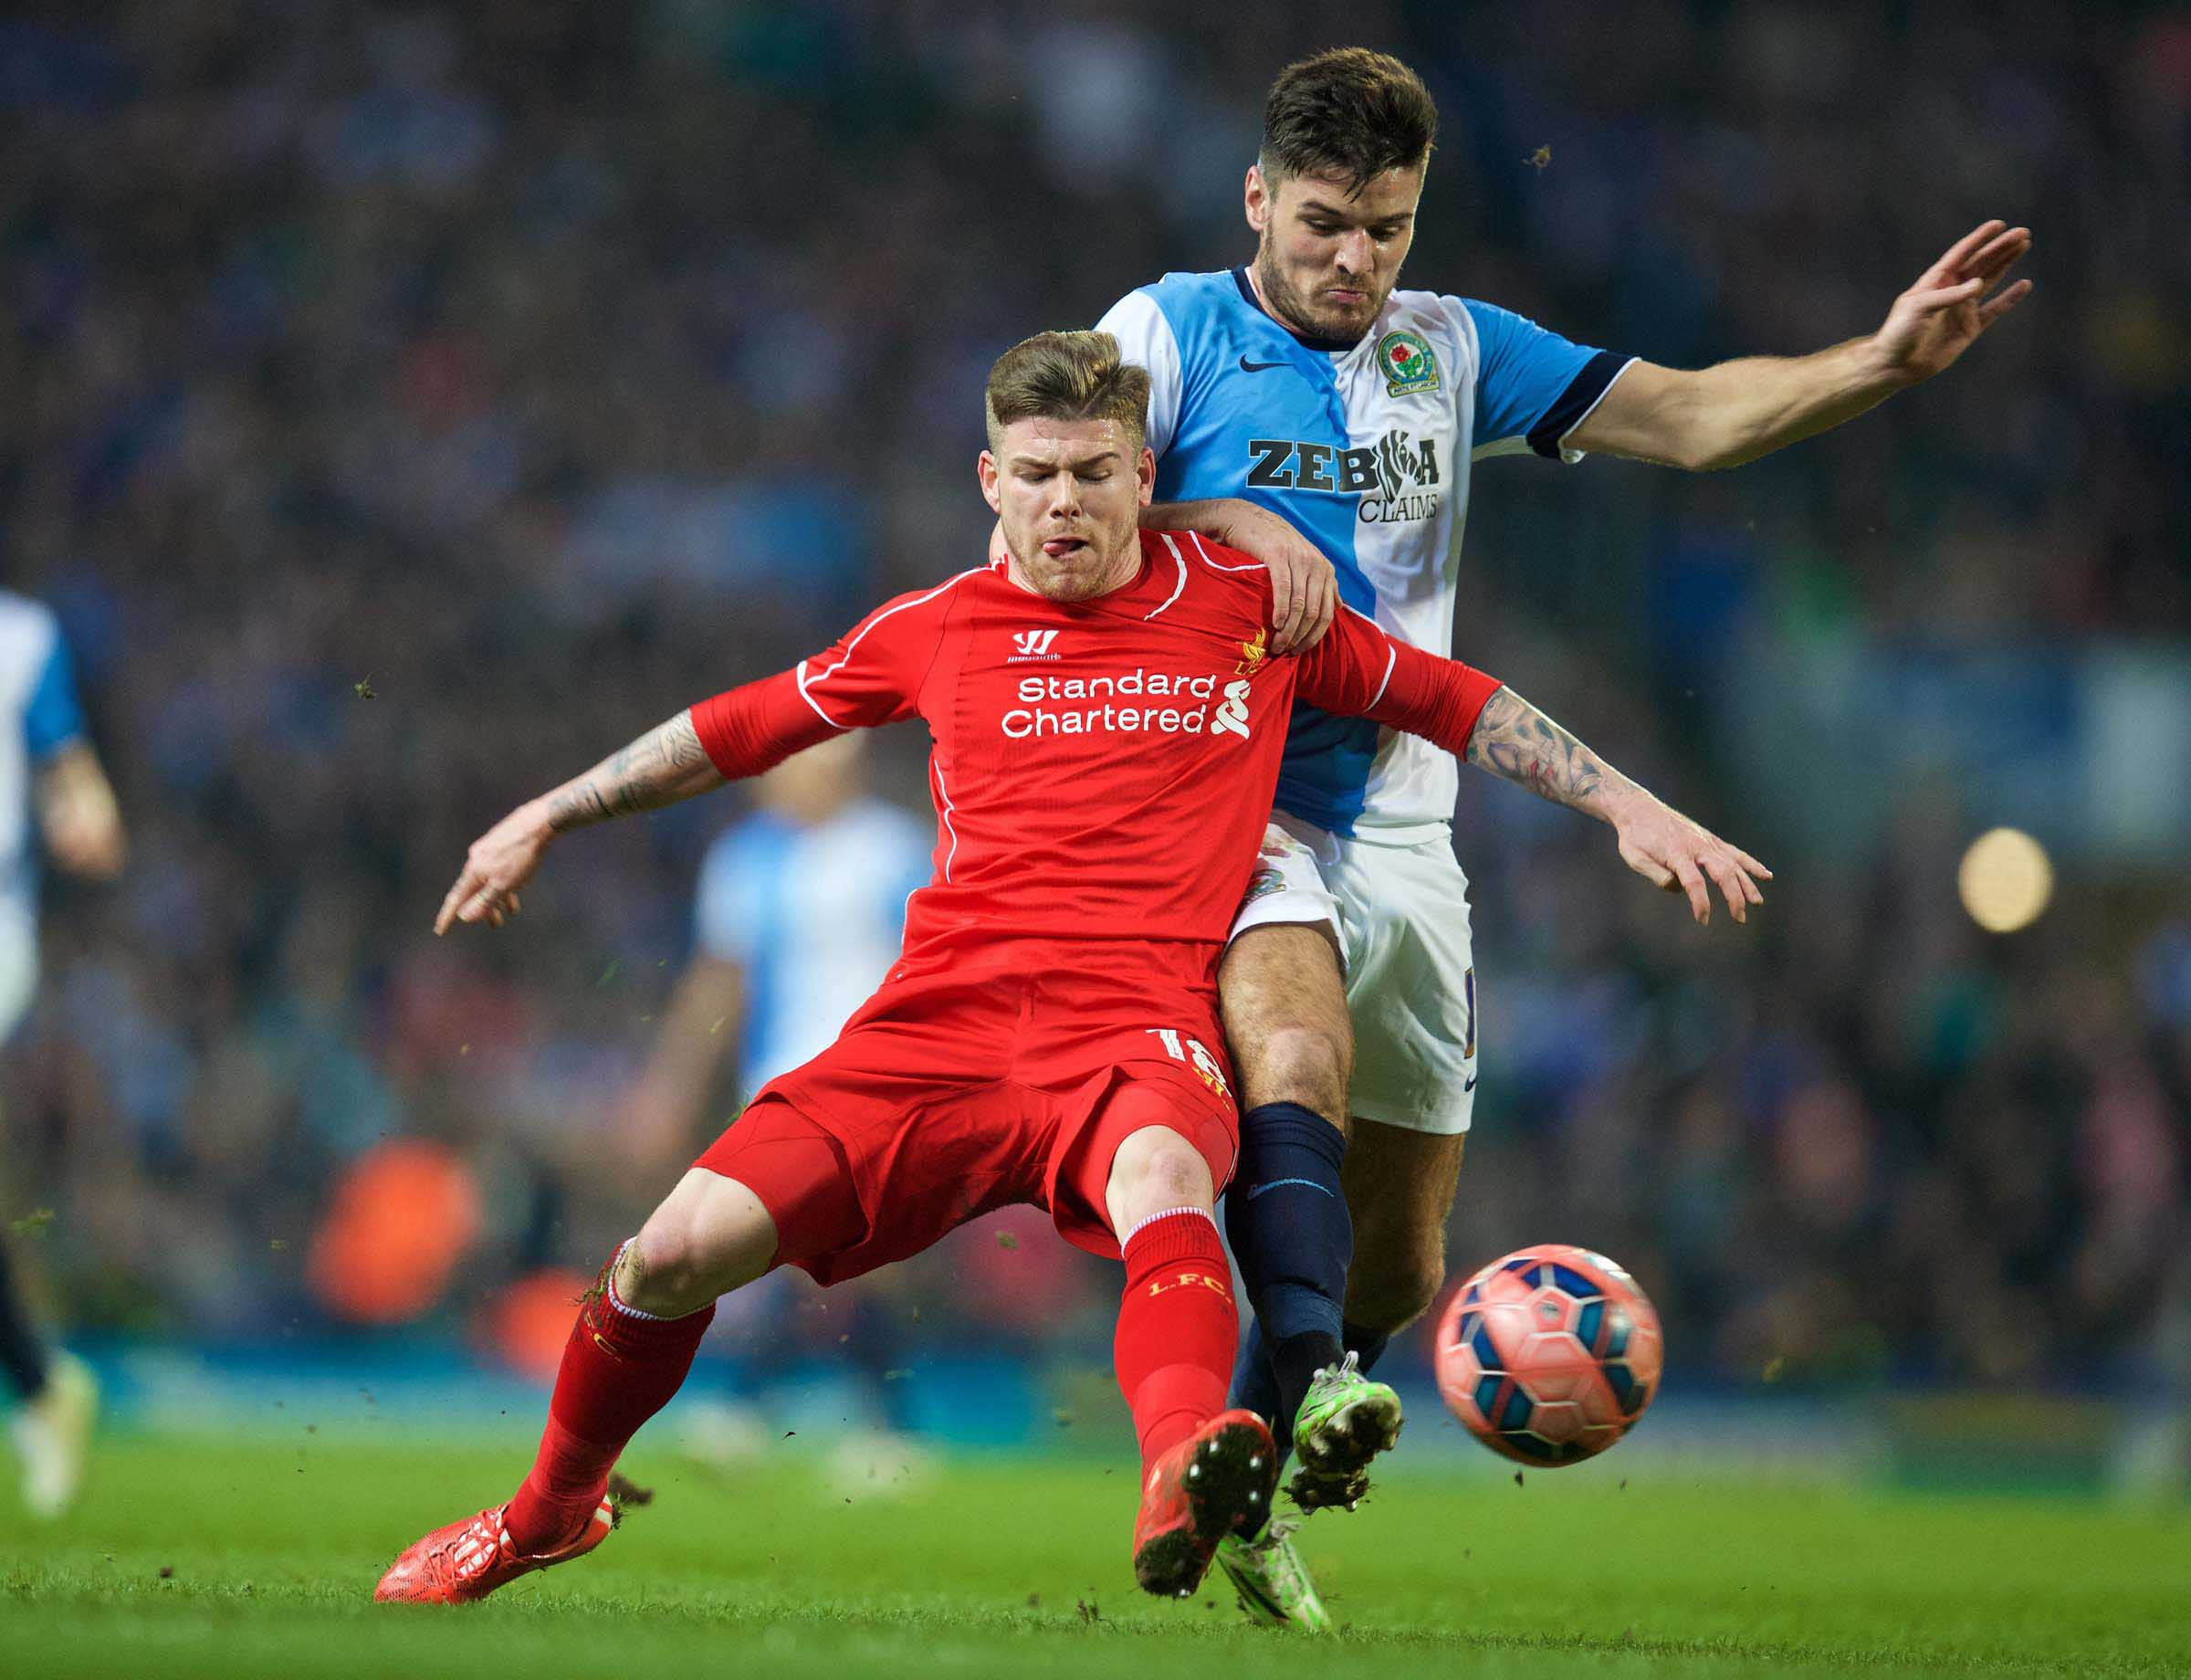 Football - FA Cup - Quarter-Final Replay - Blackburn Rovers FC v Liverpool FC